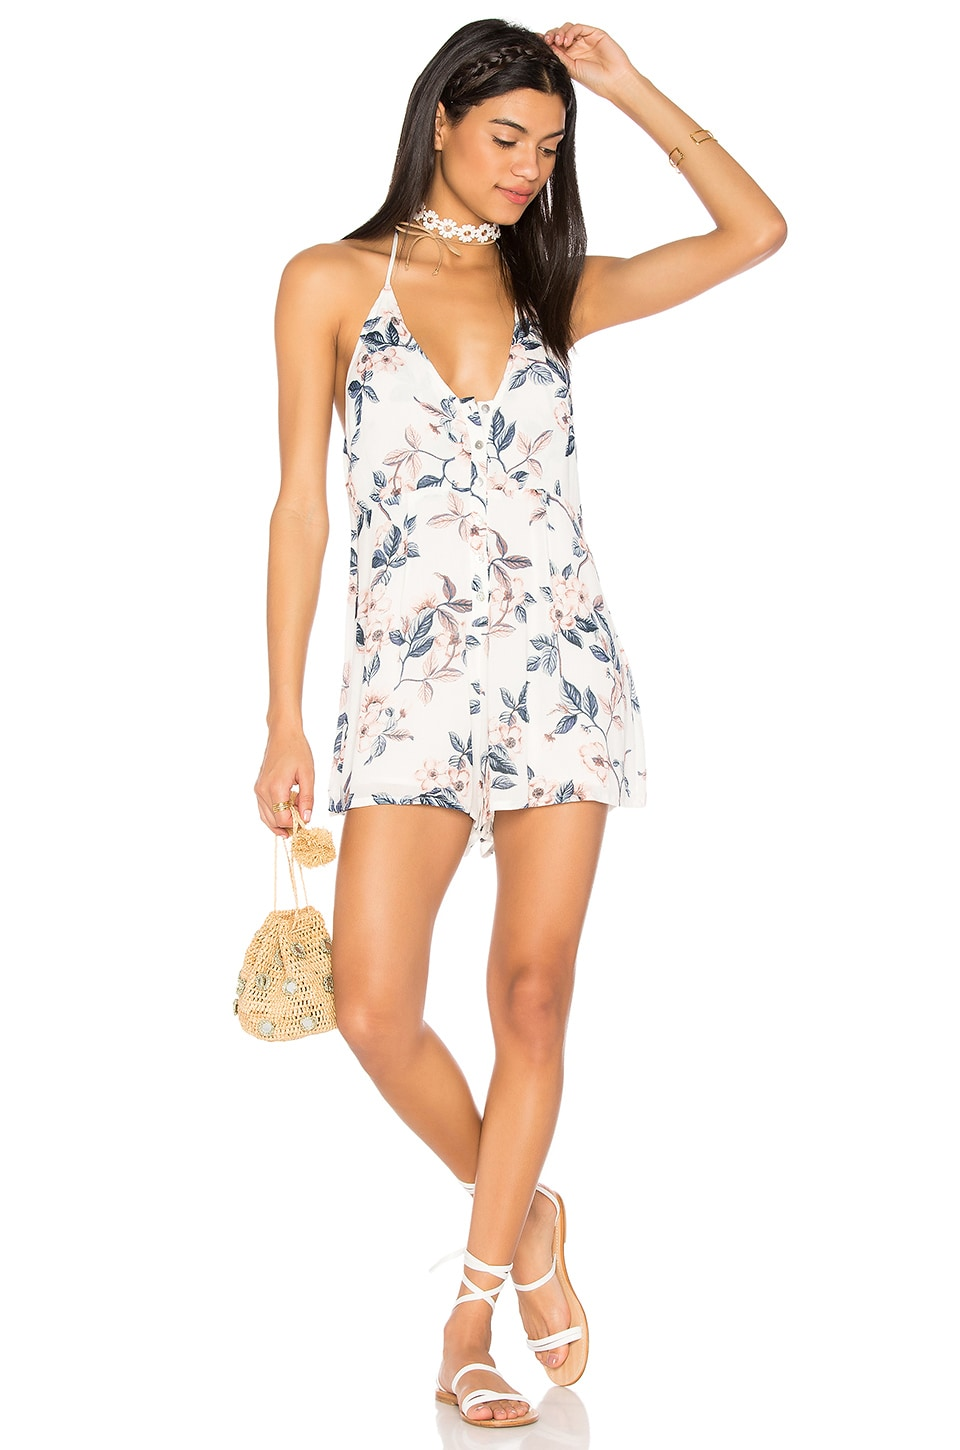 Song of Summer Playsuit